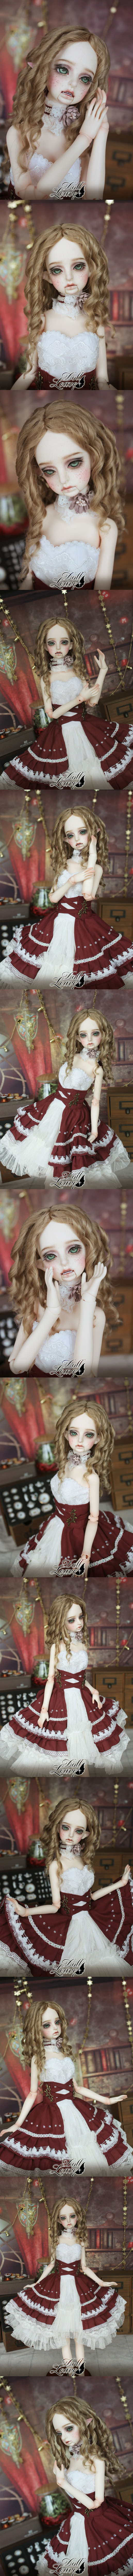 BJD PUPPET4 Ball Jointed Doll